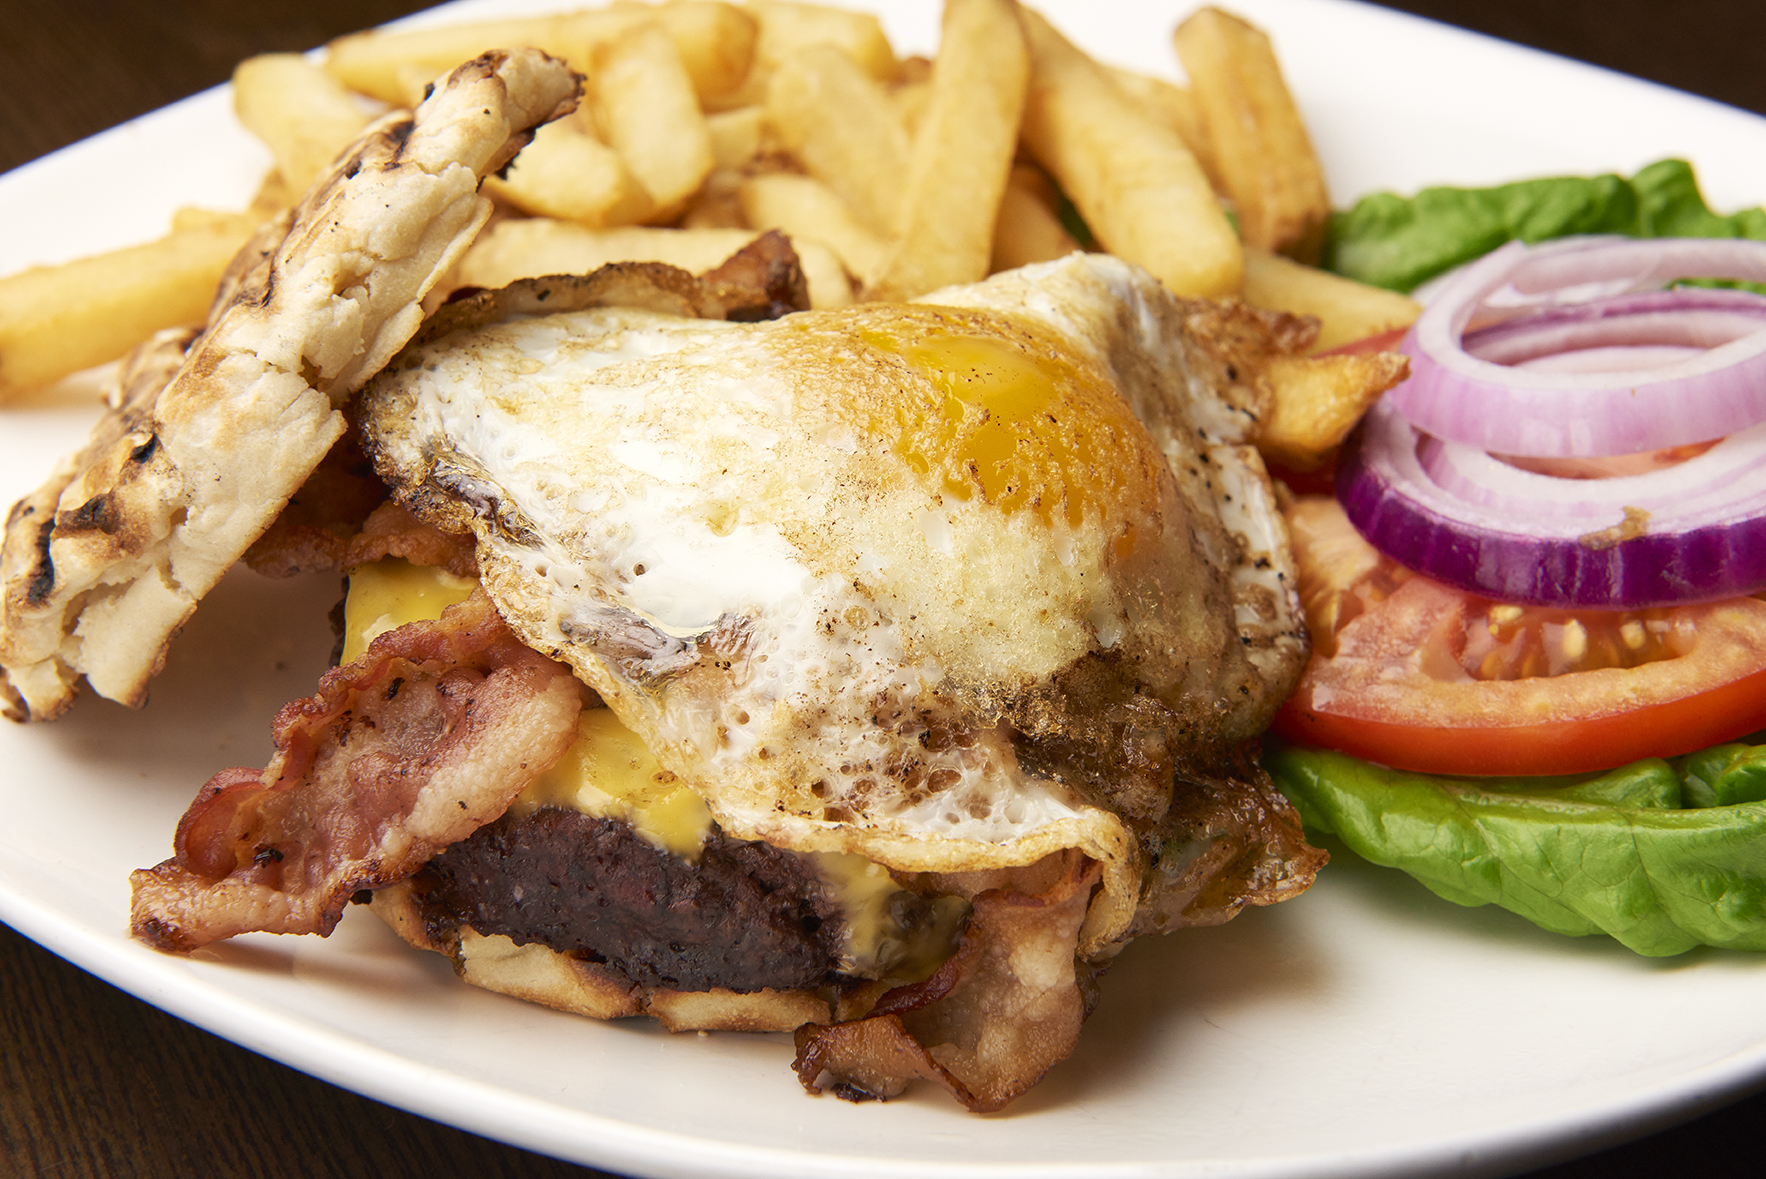 Bacon Cheeseburger with Egg